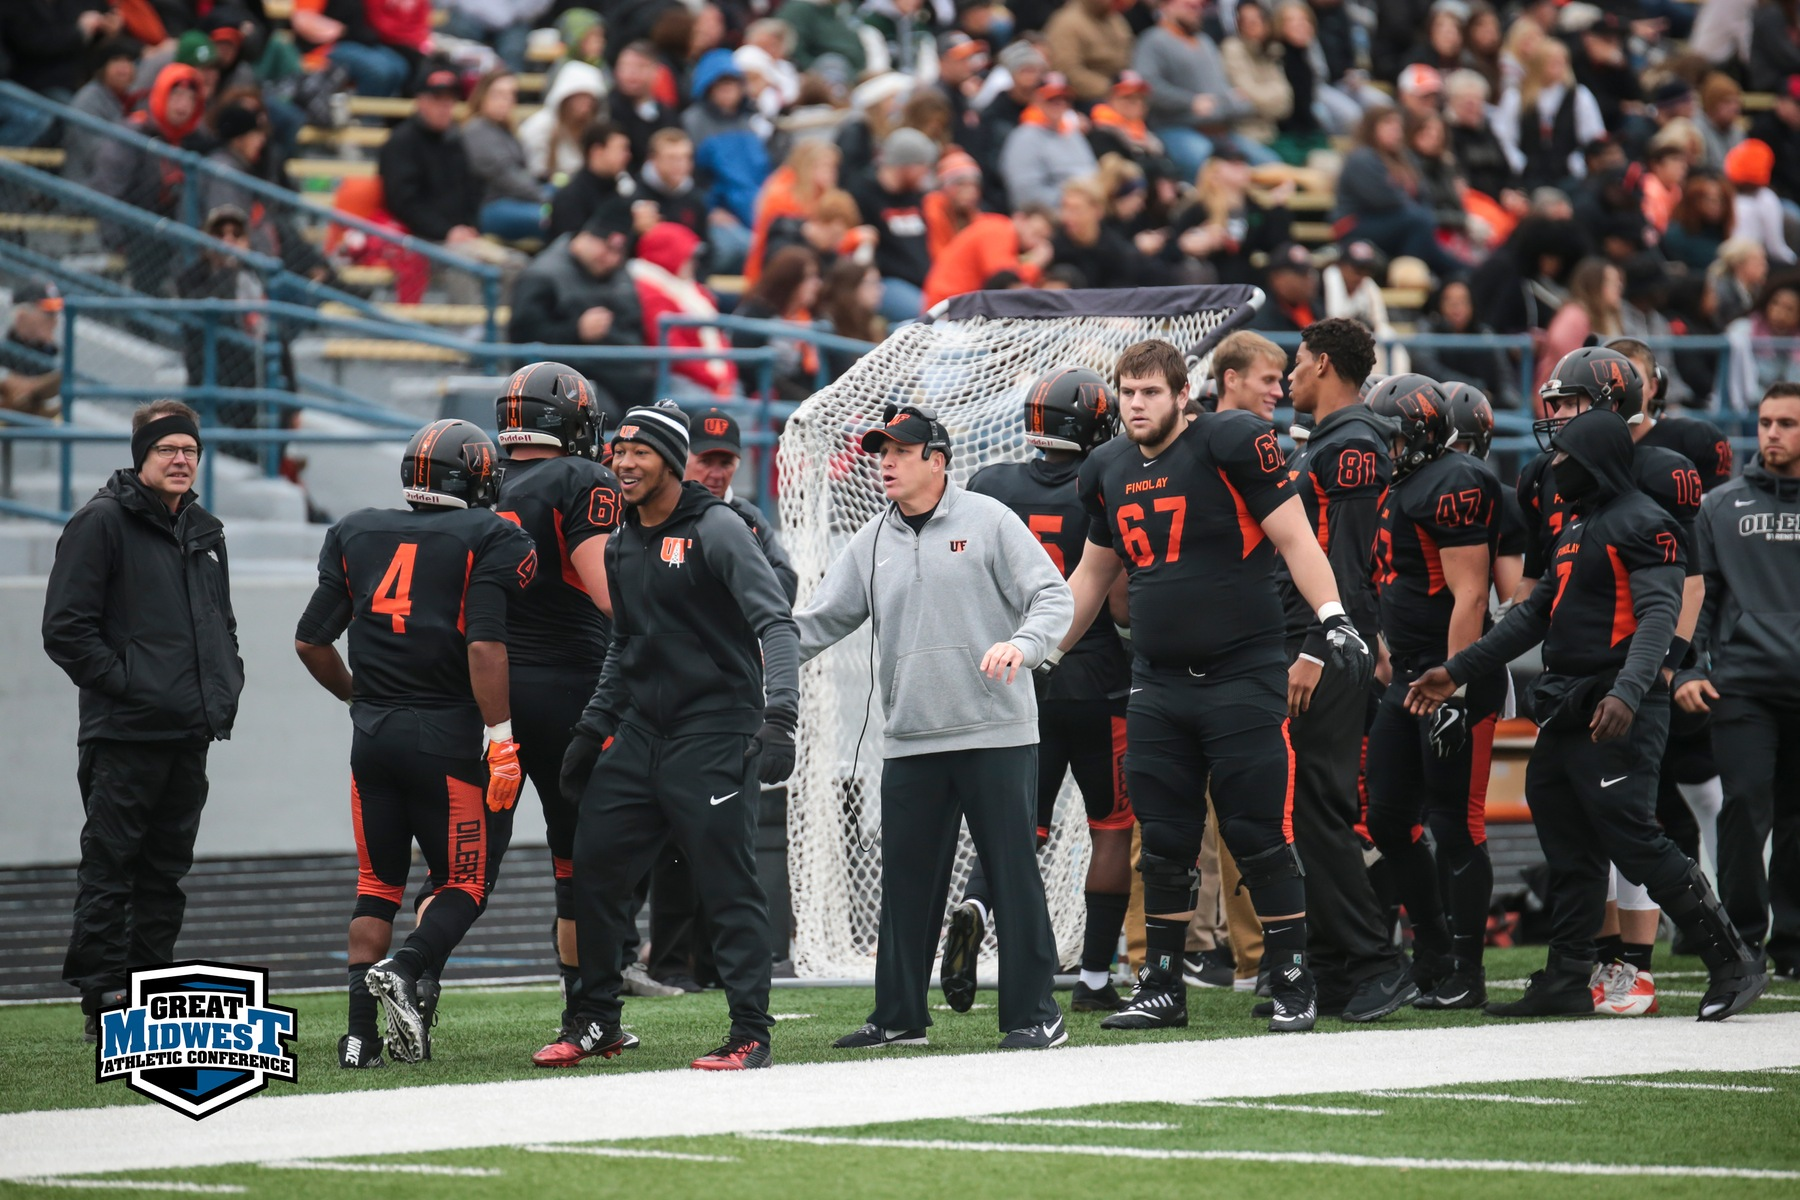 #21 Oilers Battle for First Conference Title Since 1997